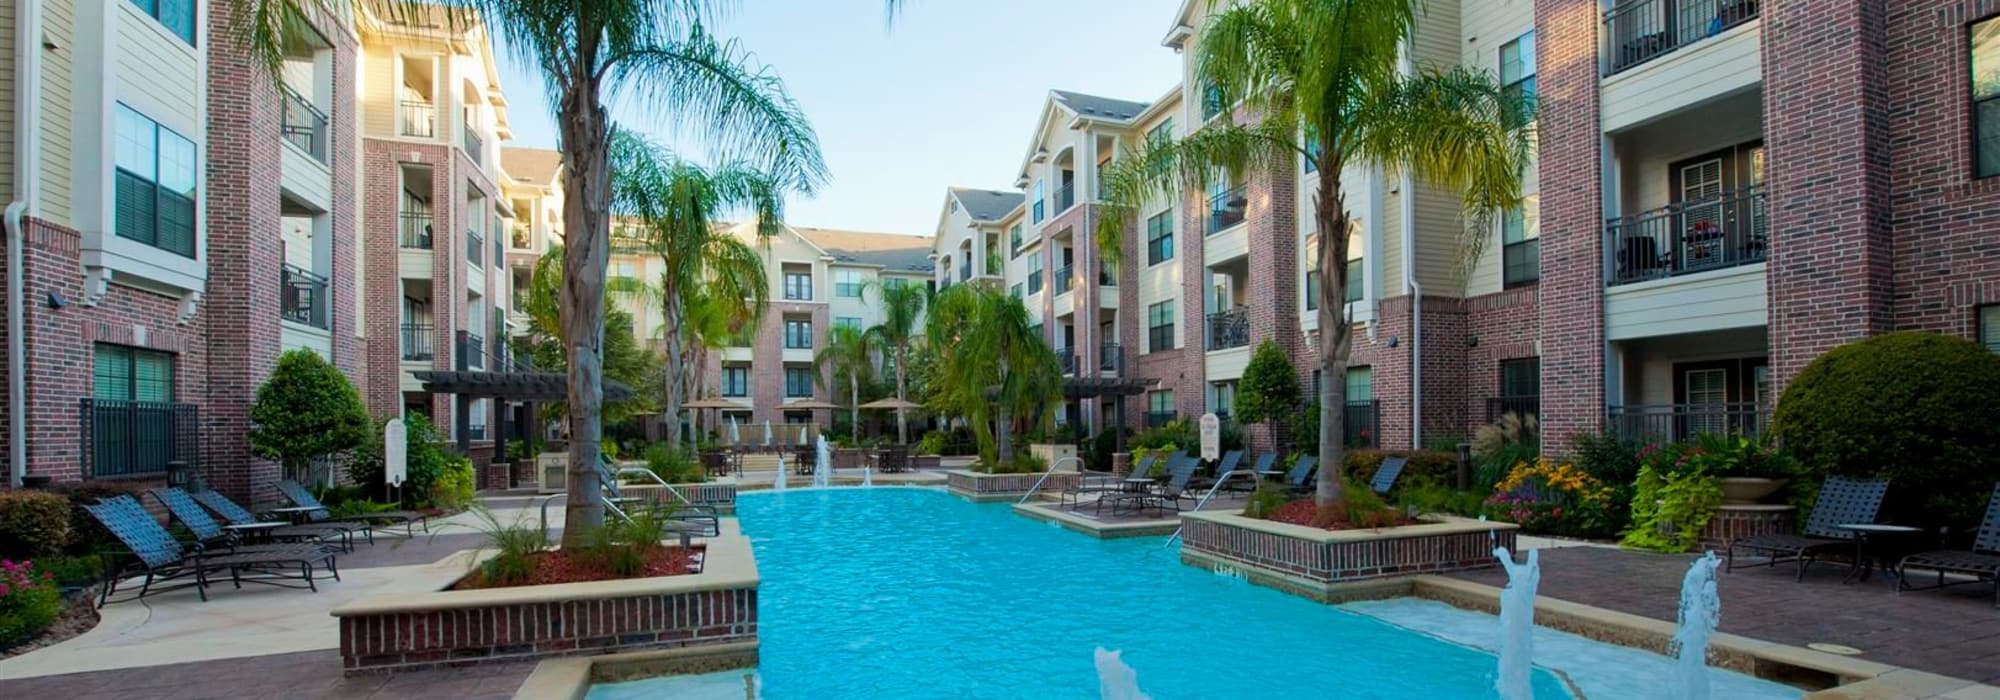 View of our swimming pool at Villas at Bunker Hill in Houston, TX